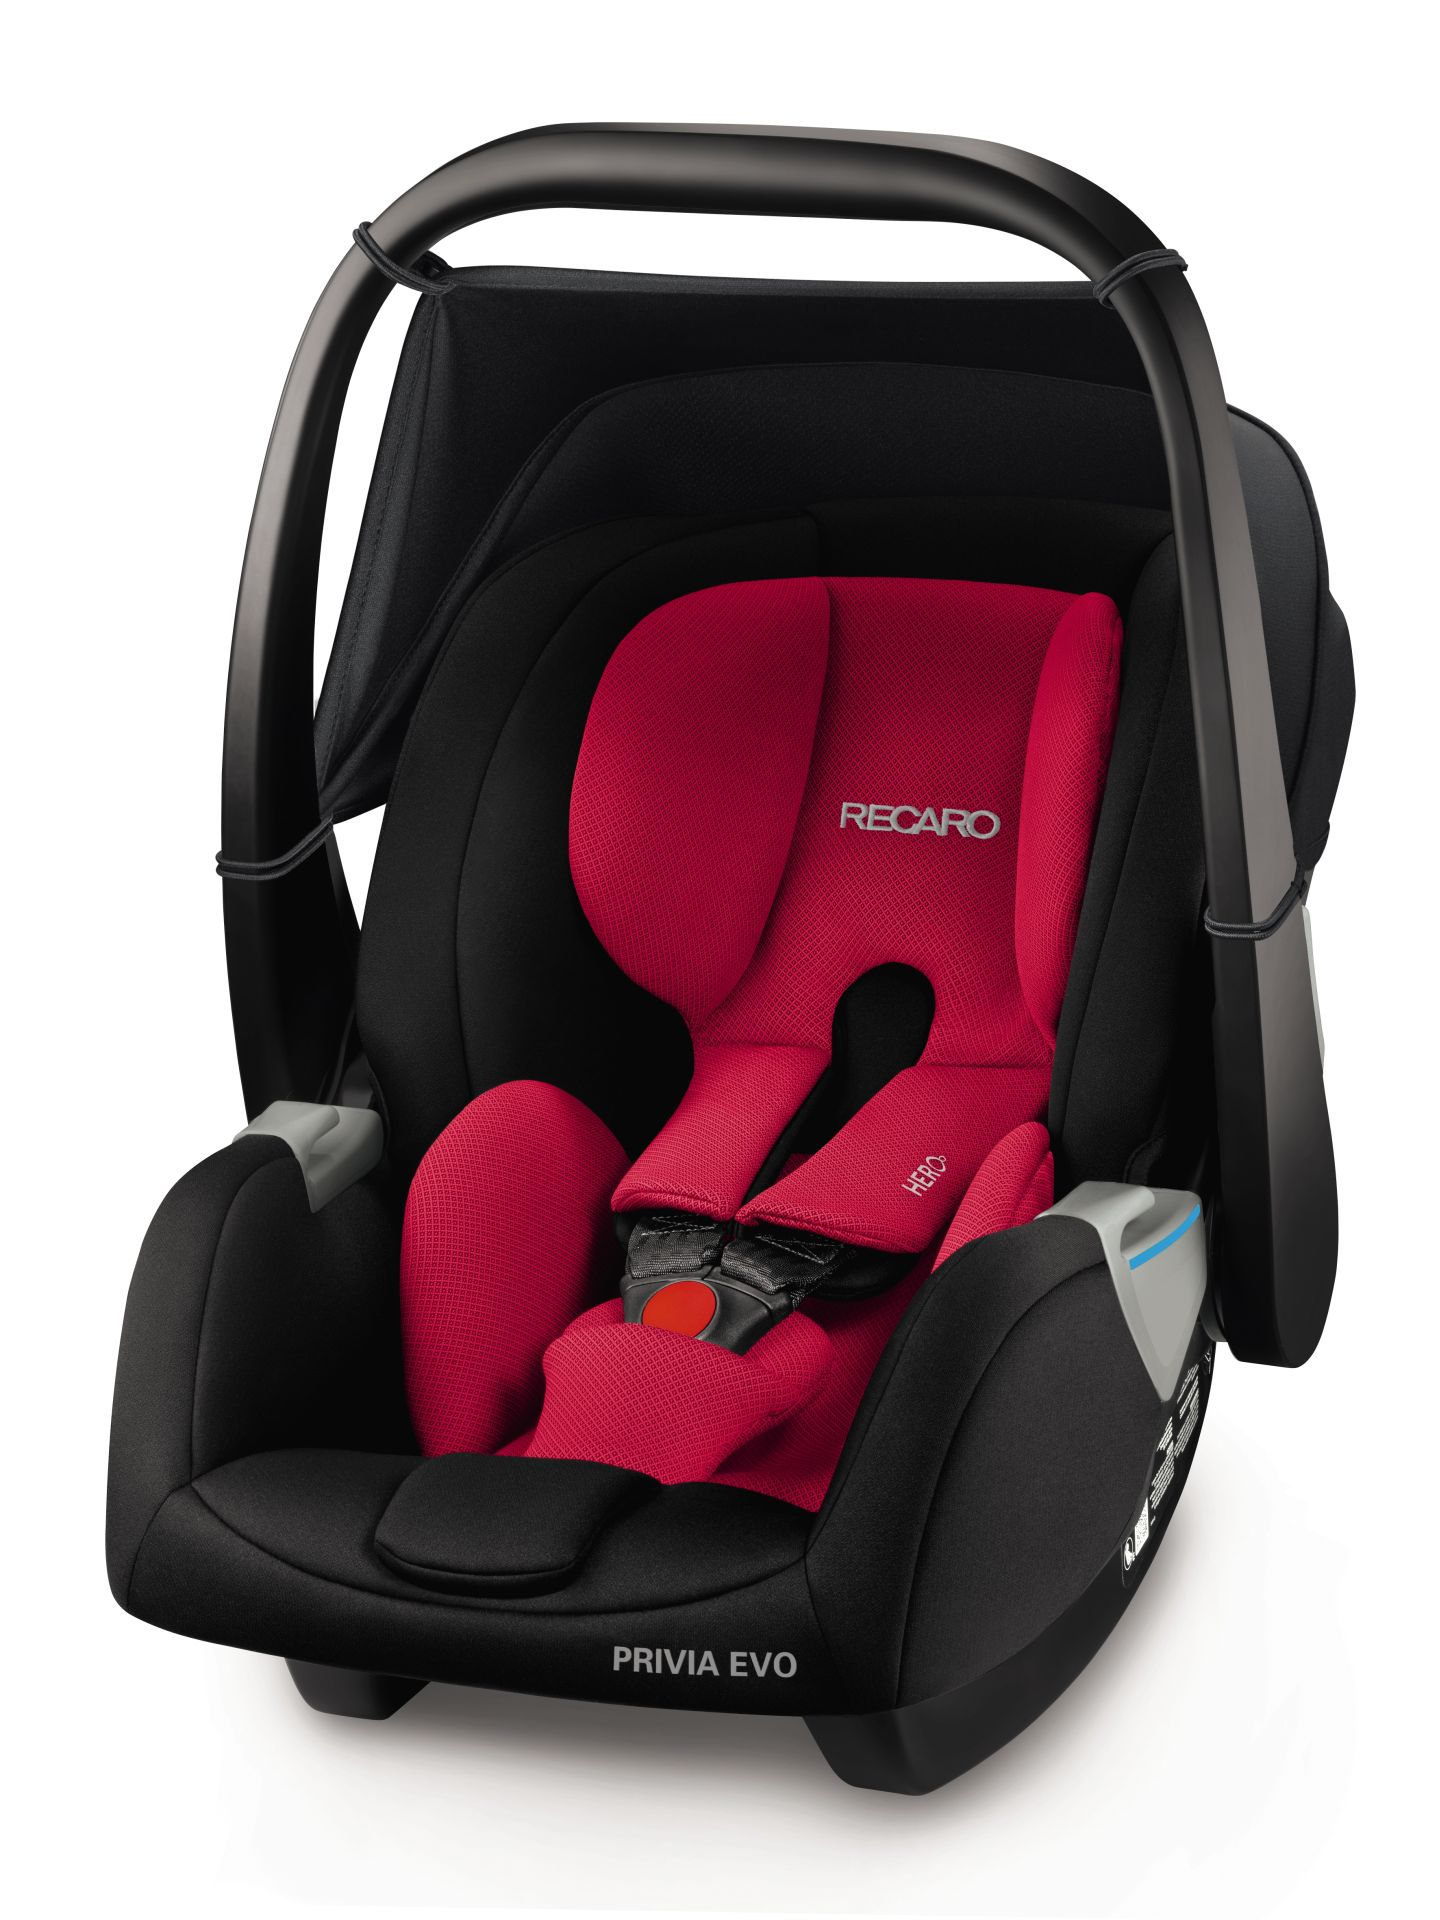 recaro infant car seat privia evo including smartclick base 2018 racing red buy at kidsroom. Black Bedroom Furniture Sets. Home Design Ideas